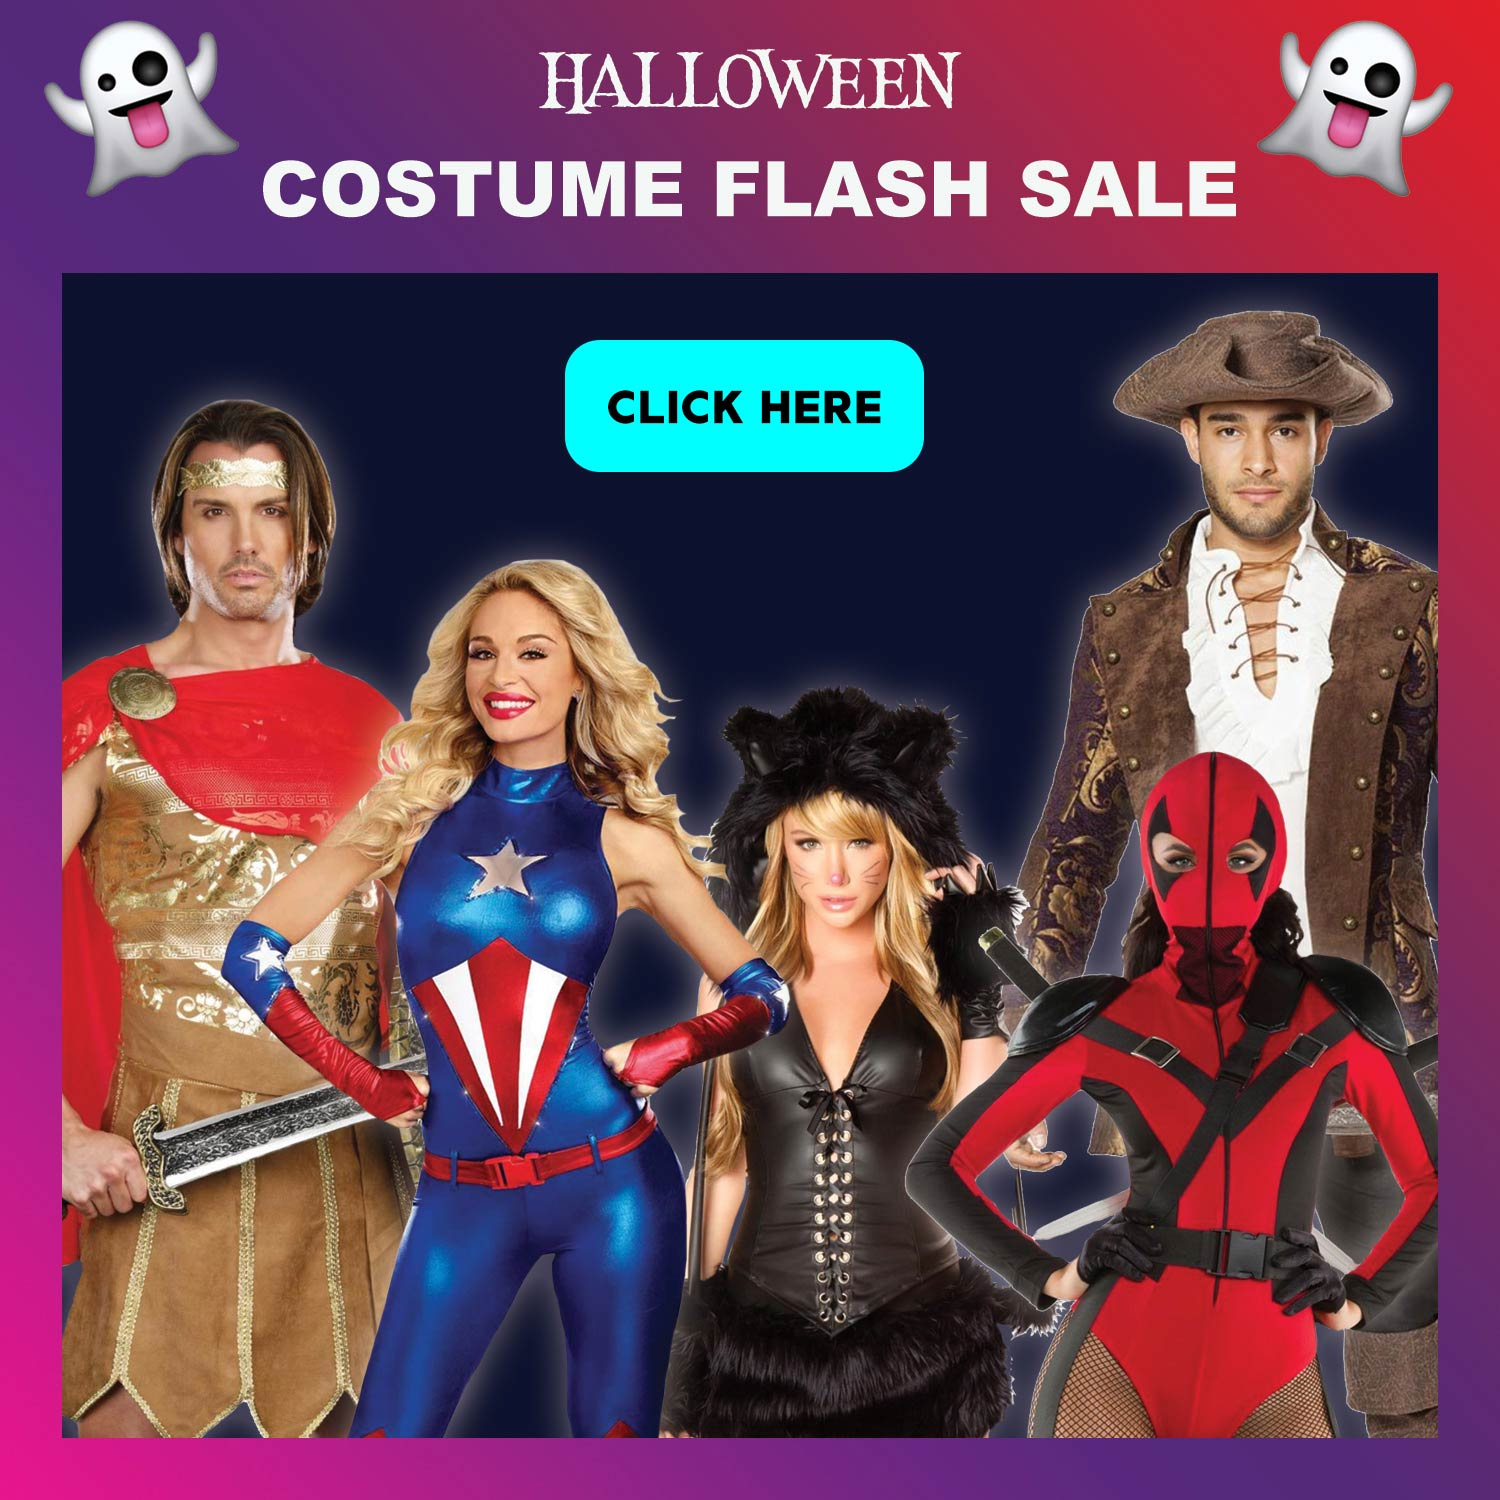 0b61595ee5c 3Wishes.com: 🎃Save BIG on your costume this weekend! 🎃 | Milled